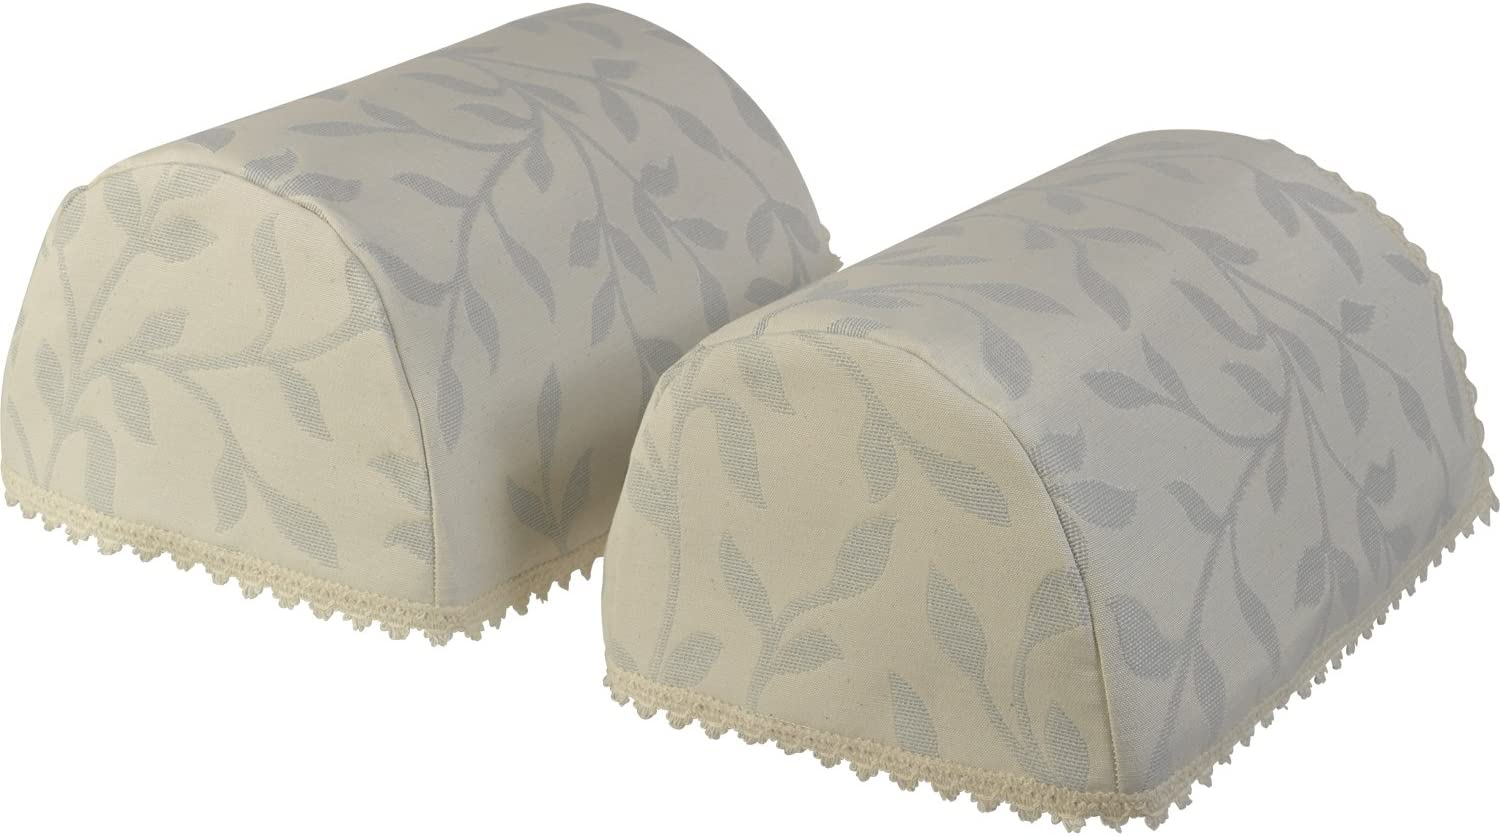 Classic Home Store Decorative Pair of Standard Round Arm Caps Floral Leaf Pattern Furniture Cover (Grey)